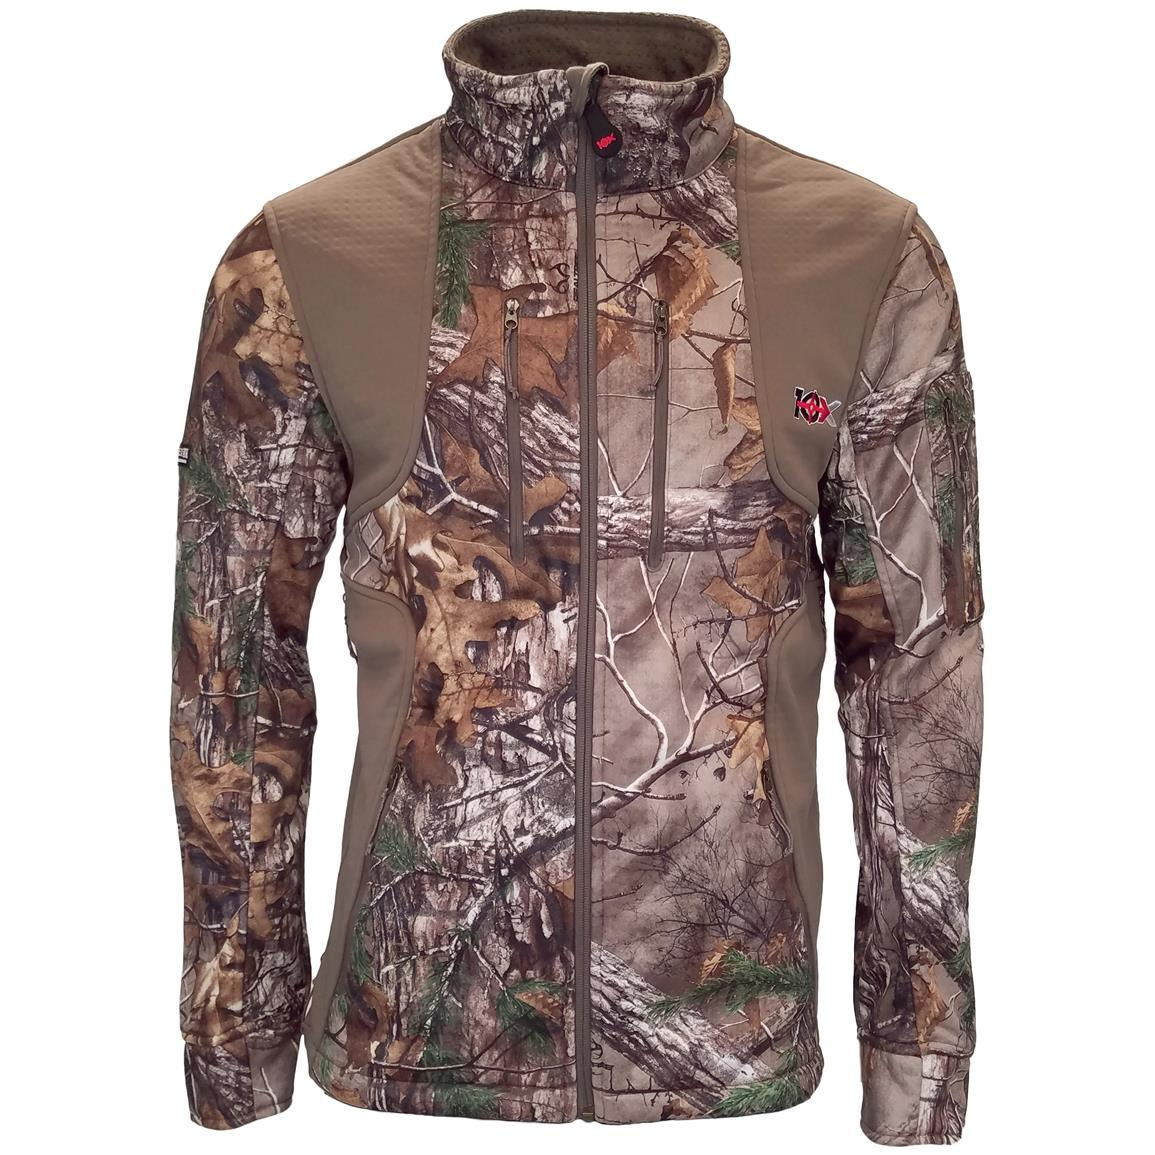 10X Men's Scentrex Lock Down Jacket, Realtree Xtra